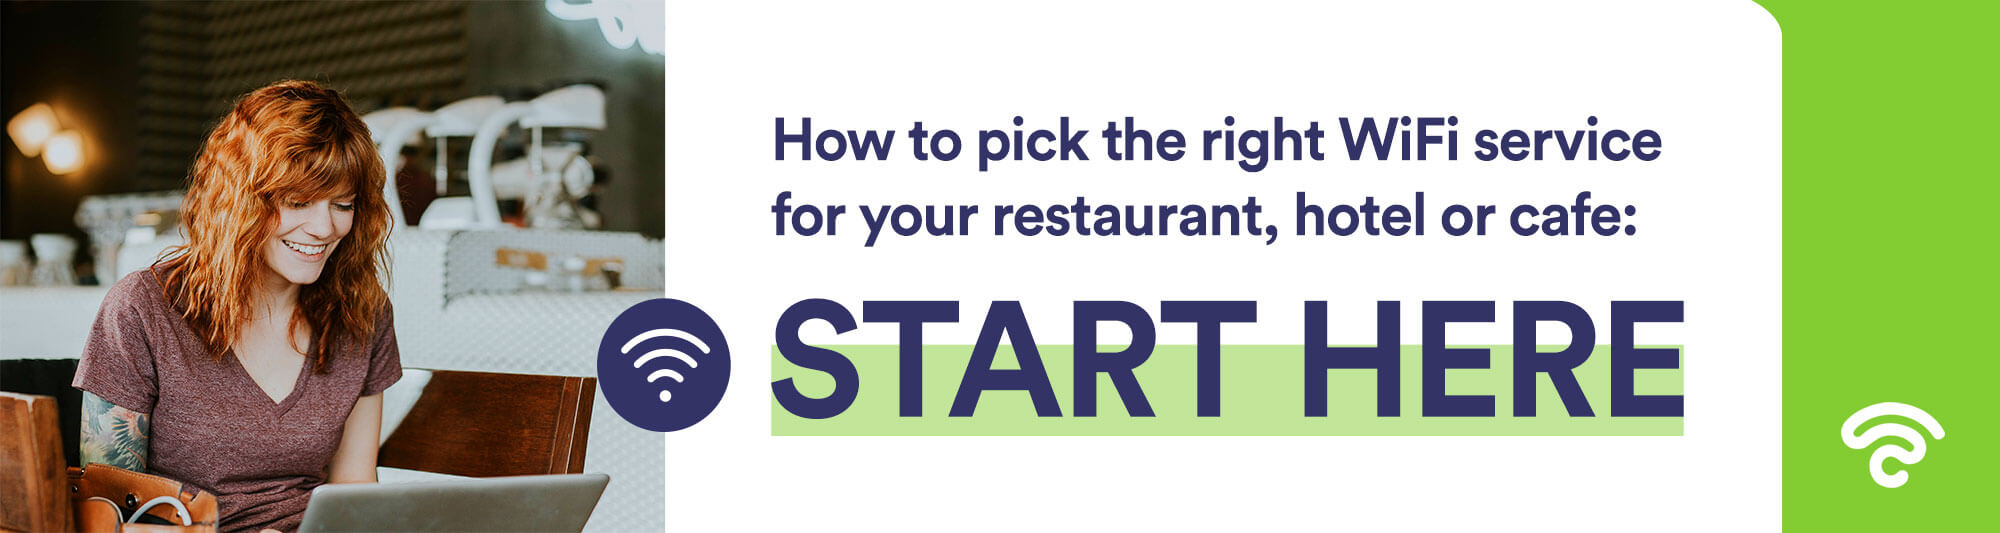 how to pick right wifi service for restaurants